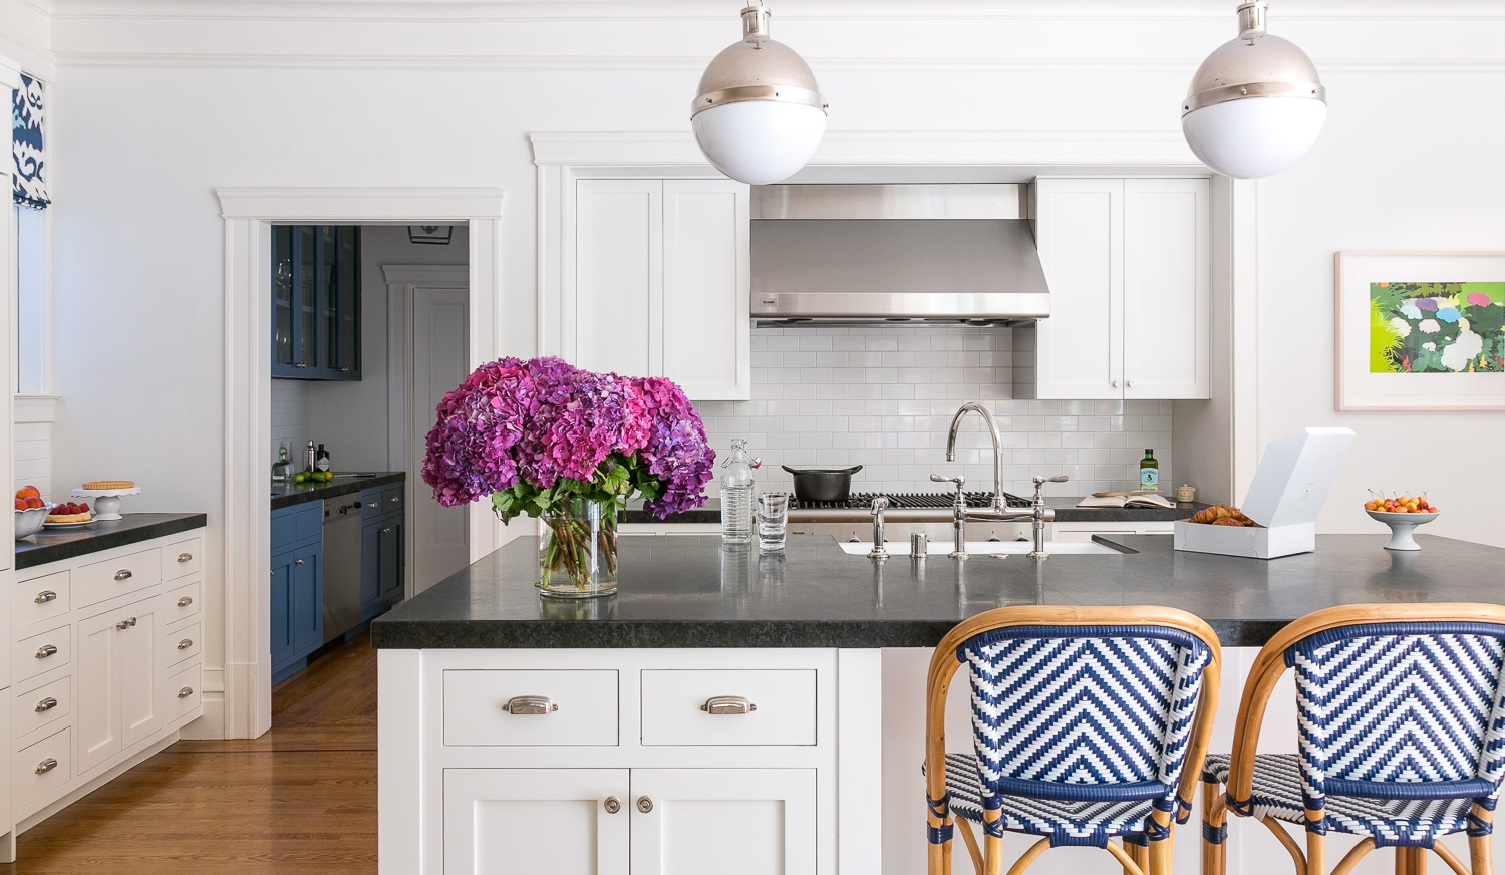 Kitchen design by Grant K. Gibson at grantkgibson.com